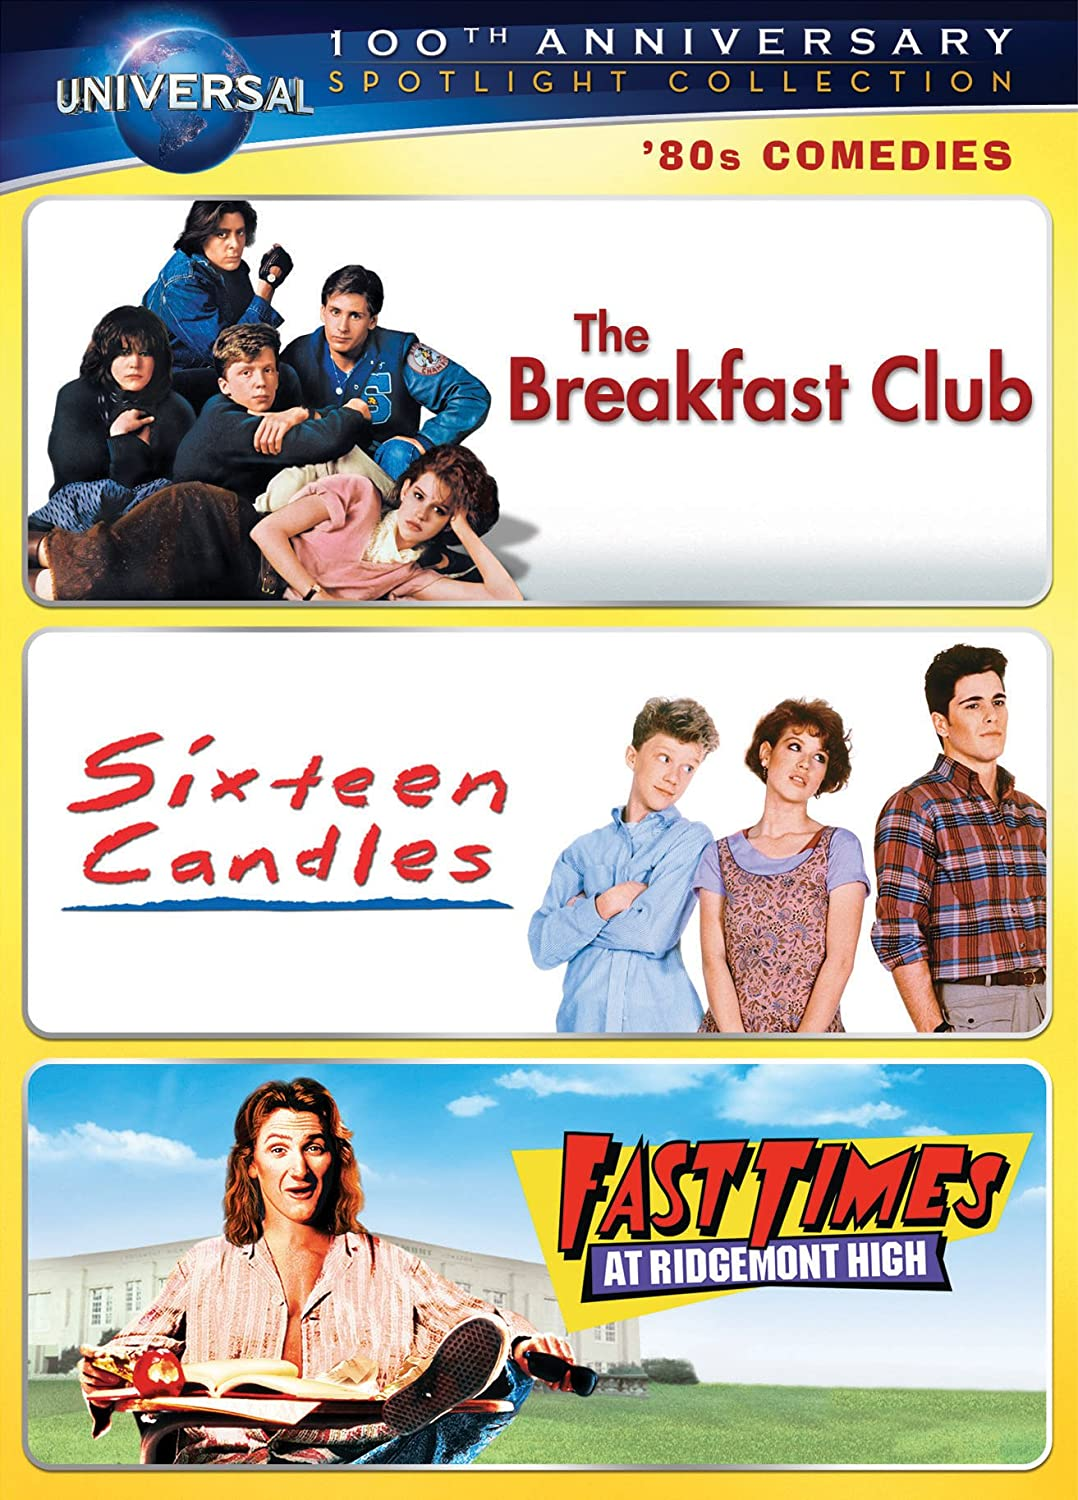 Amazon.com: '80s Comedies Spotlight Collection [The Breakfast Club, Sixteen  Candles, Fast Times at Ridgemont High] (Universal's 100th Anniversary):  Molly ...